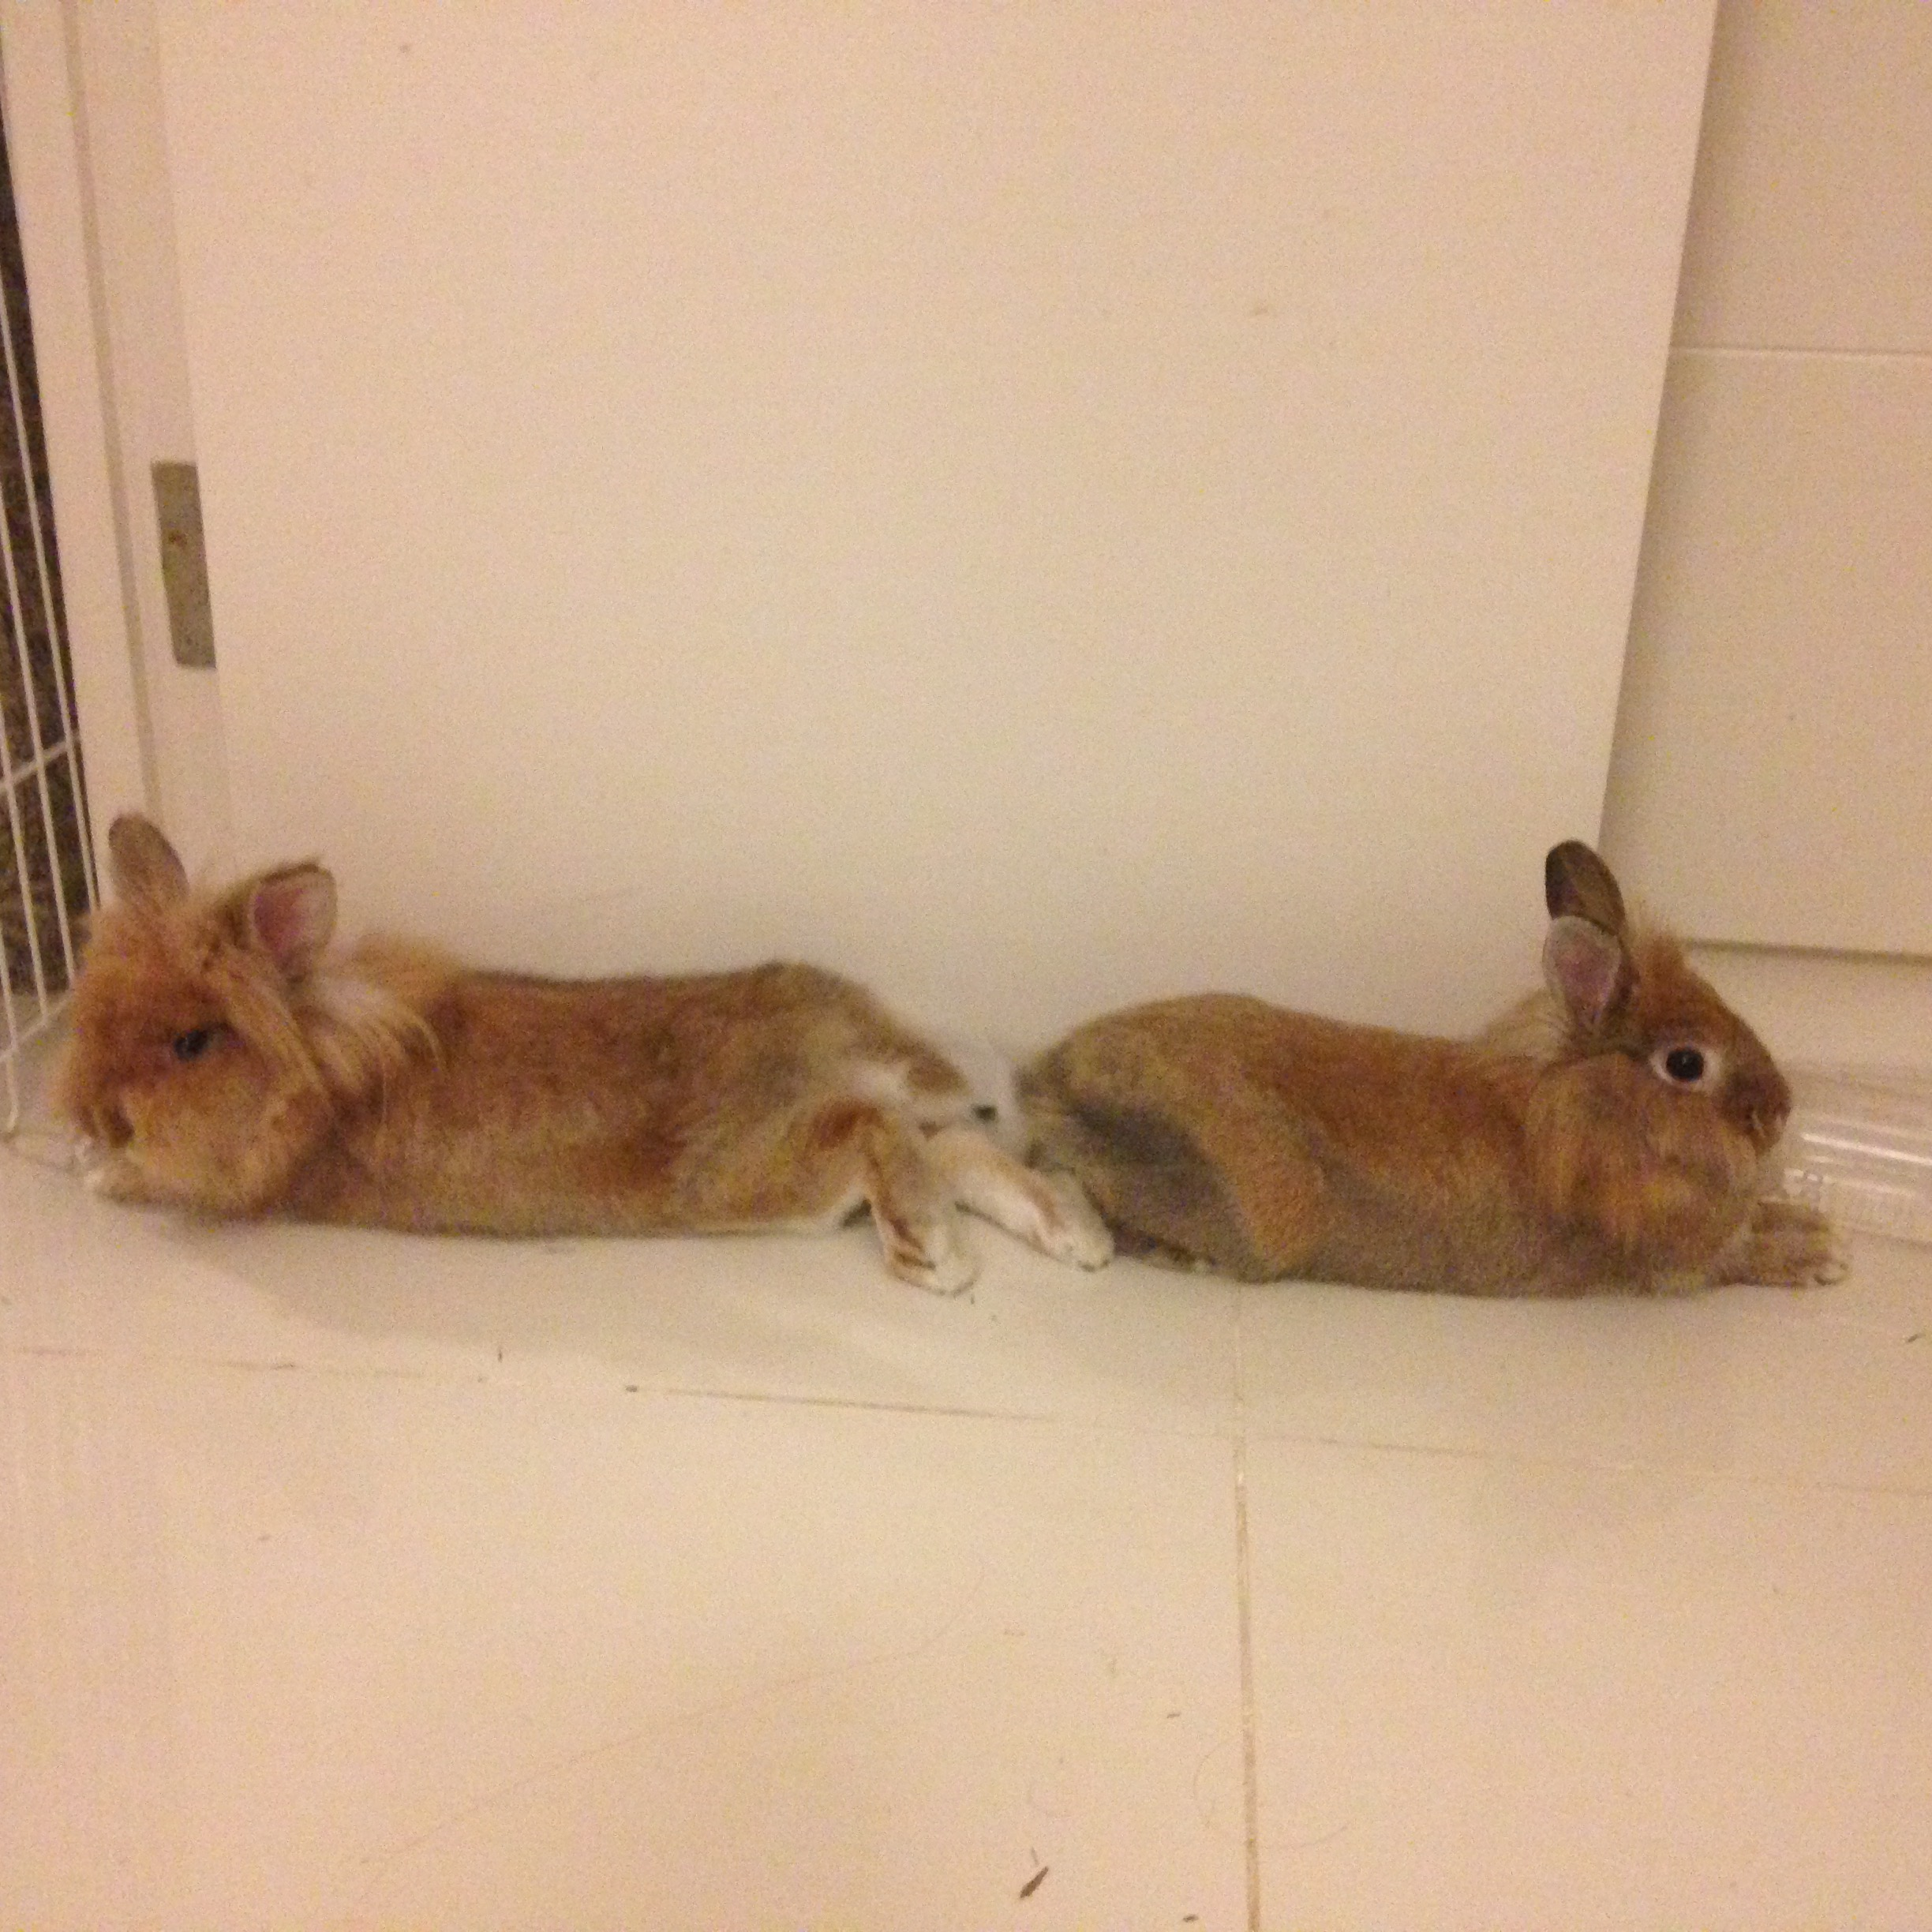 Two brown bunnies lying together but facing in opposite directions. They are watching and alert while saving their energies.